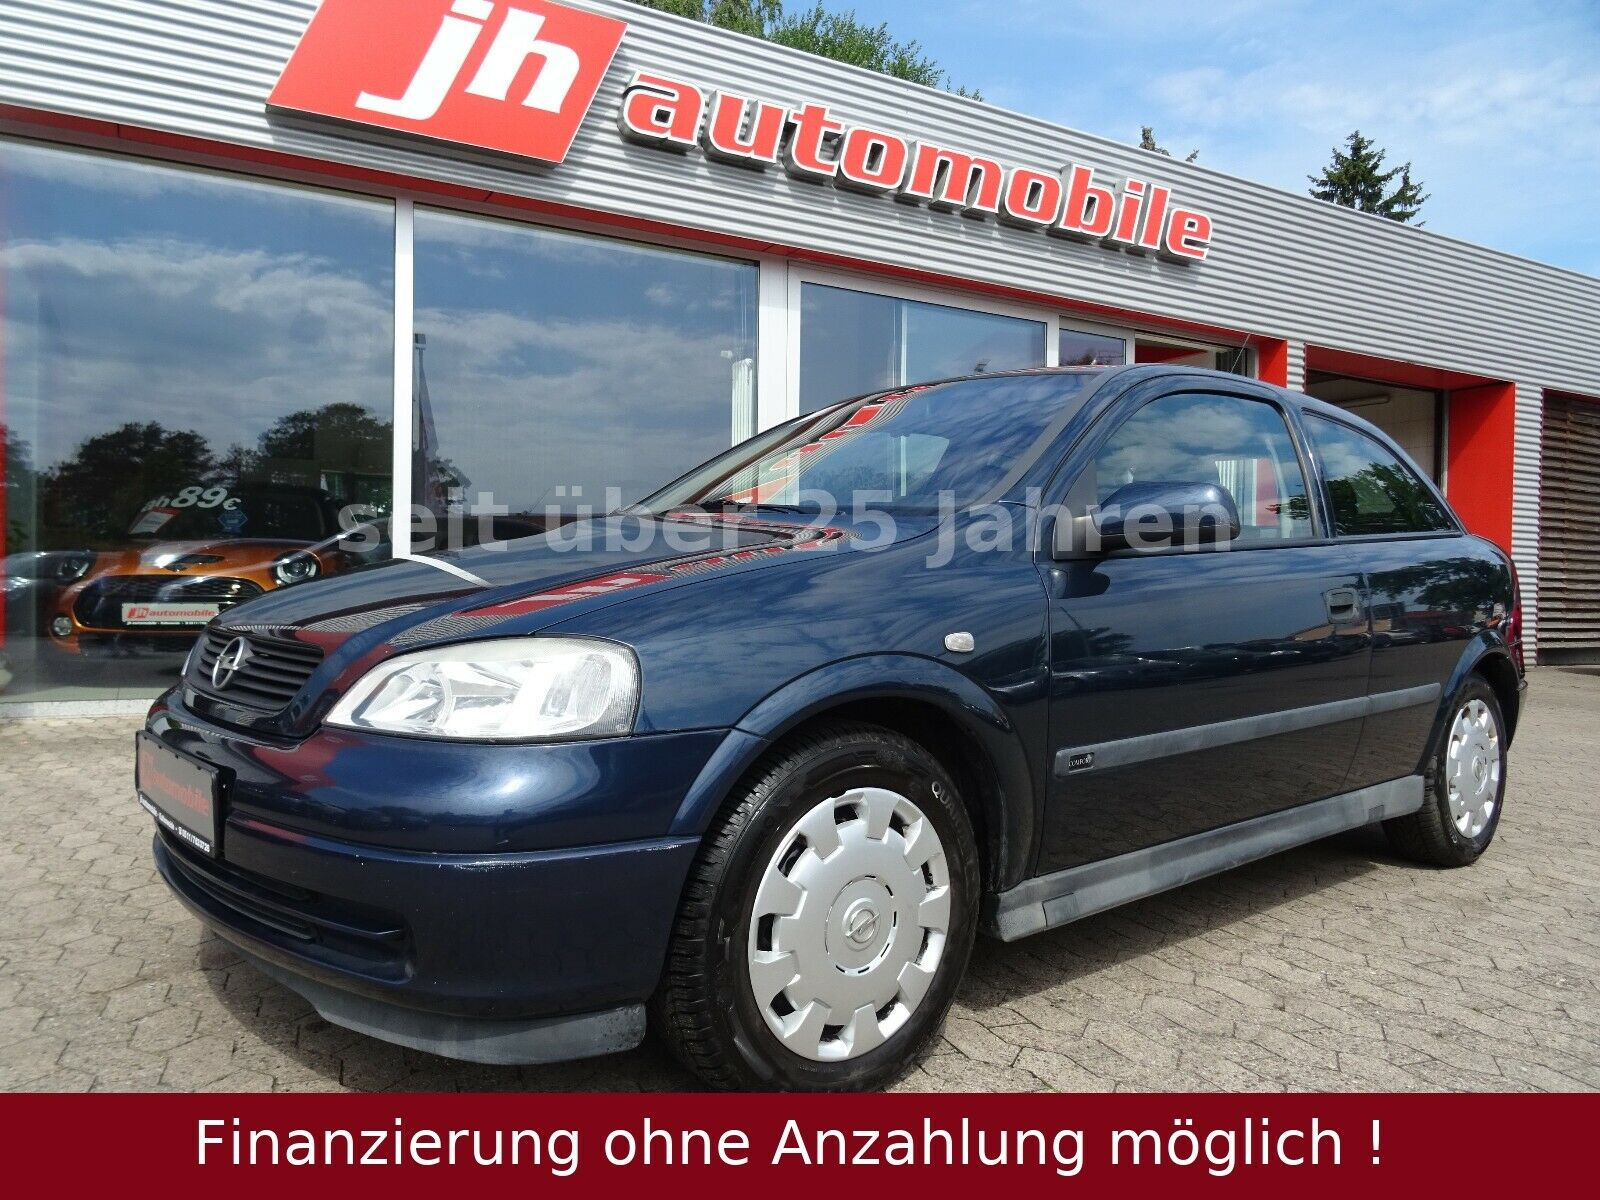 OPEL Astra G Lim. Comfort*Klima*Airbag*Fin ab 69,-